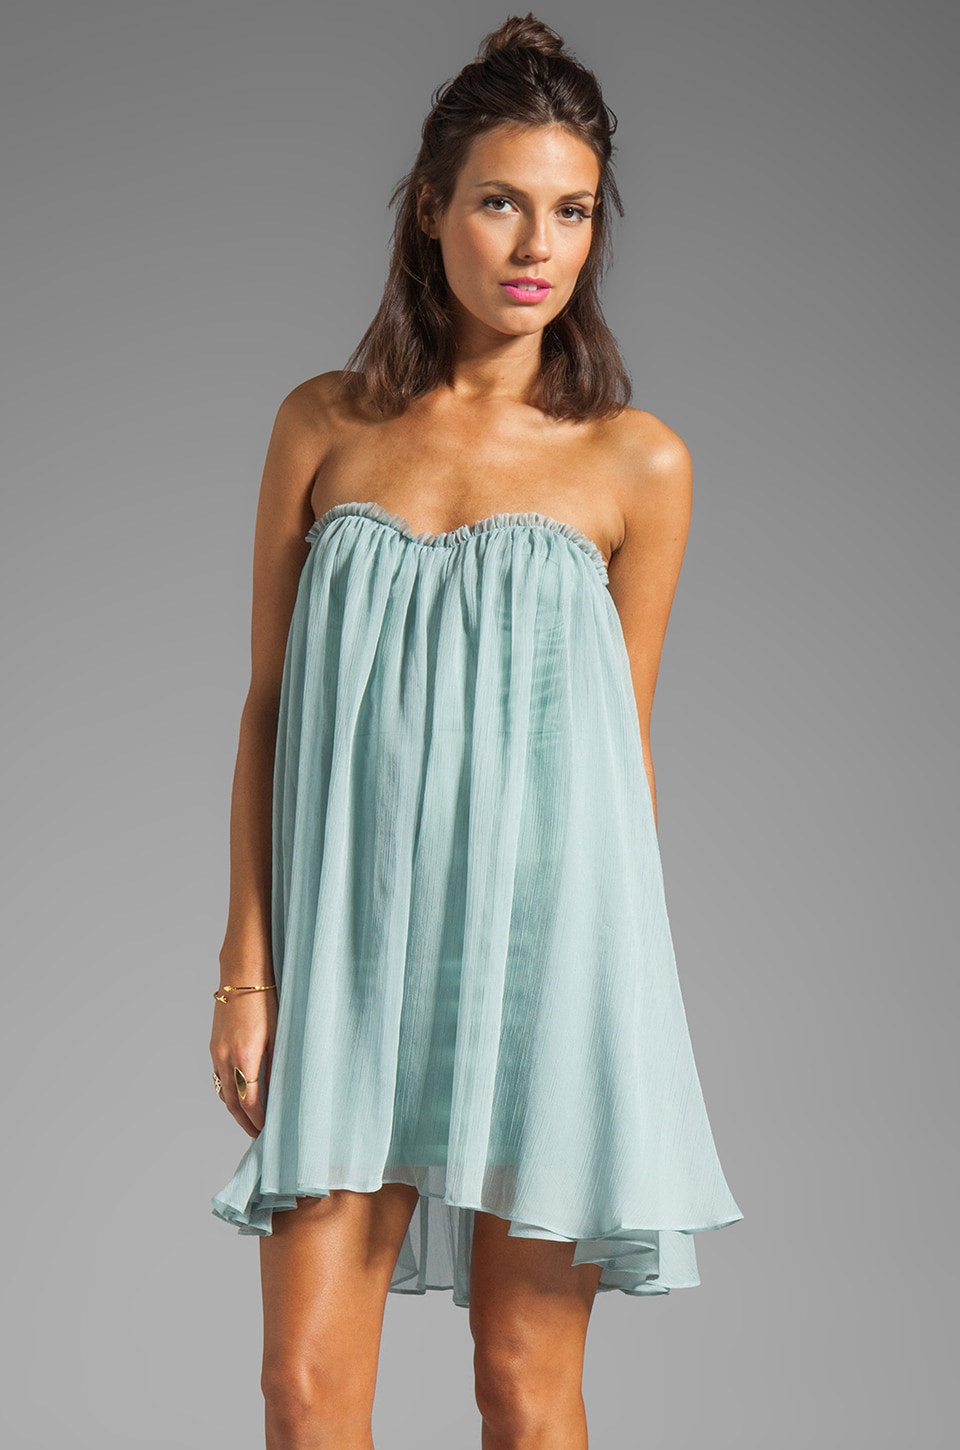 BLAQUE LABEL Strapless Mini Dress in Sky